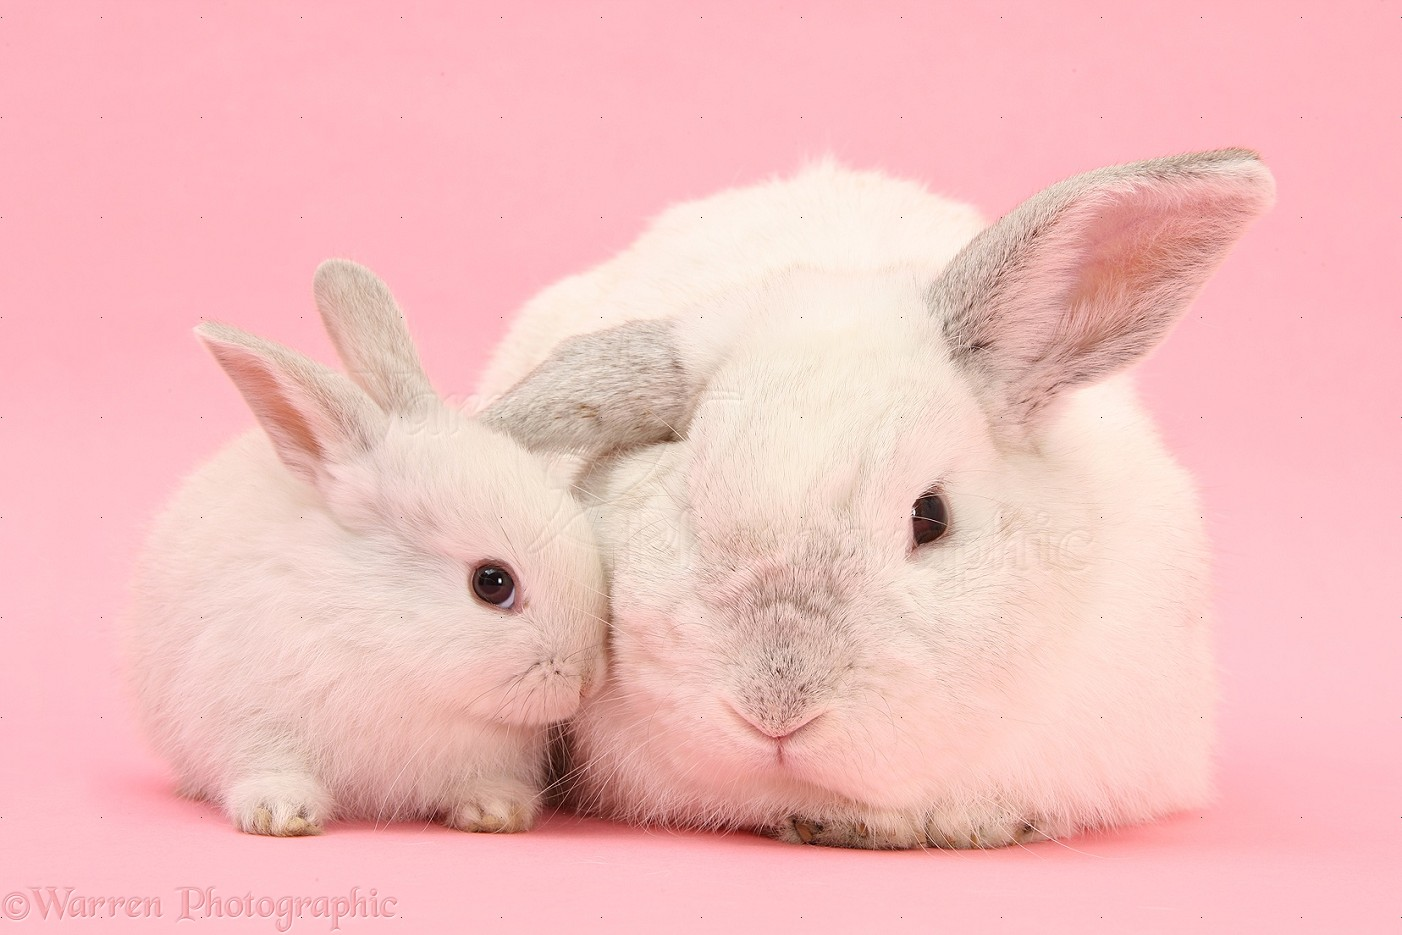 WP27540 White Lop rabbits on pink background.